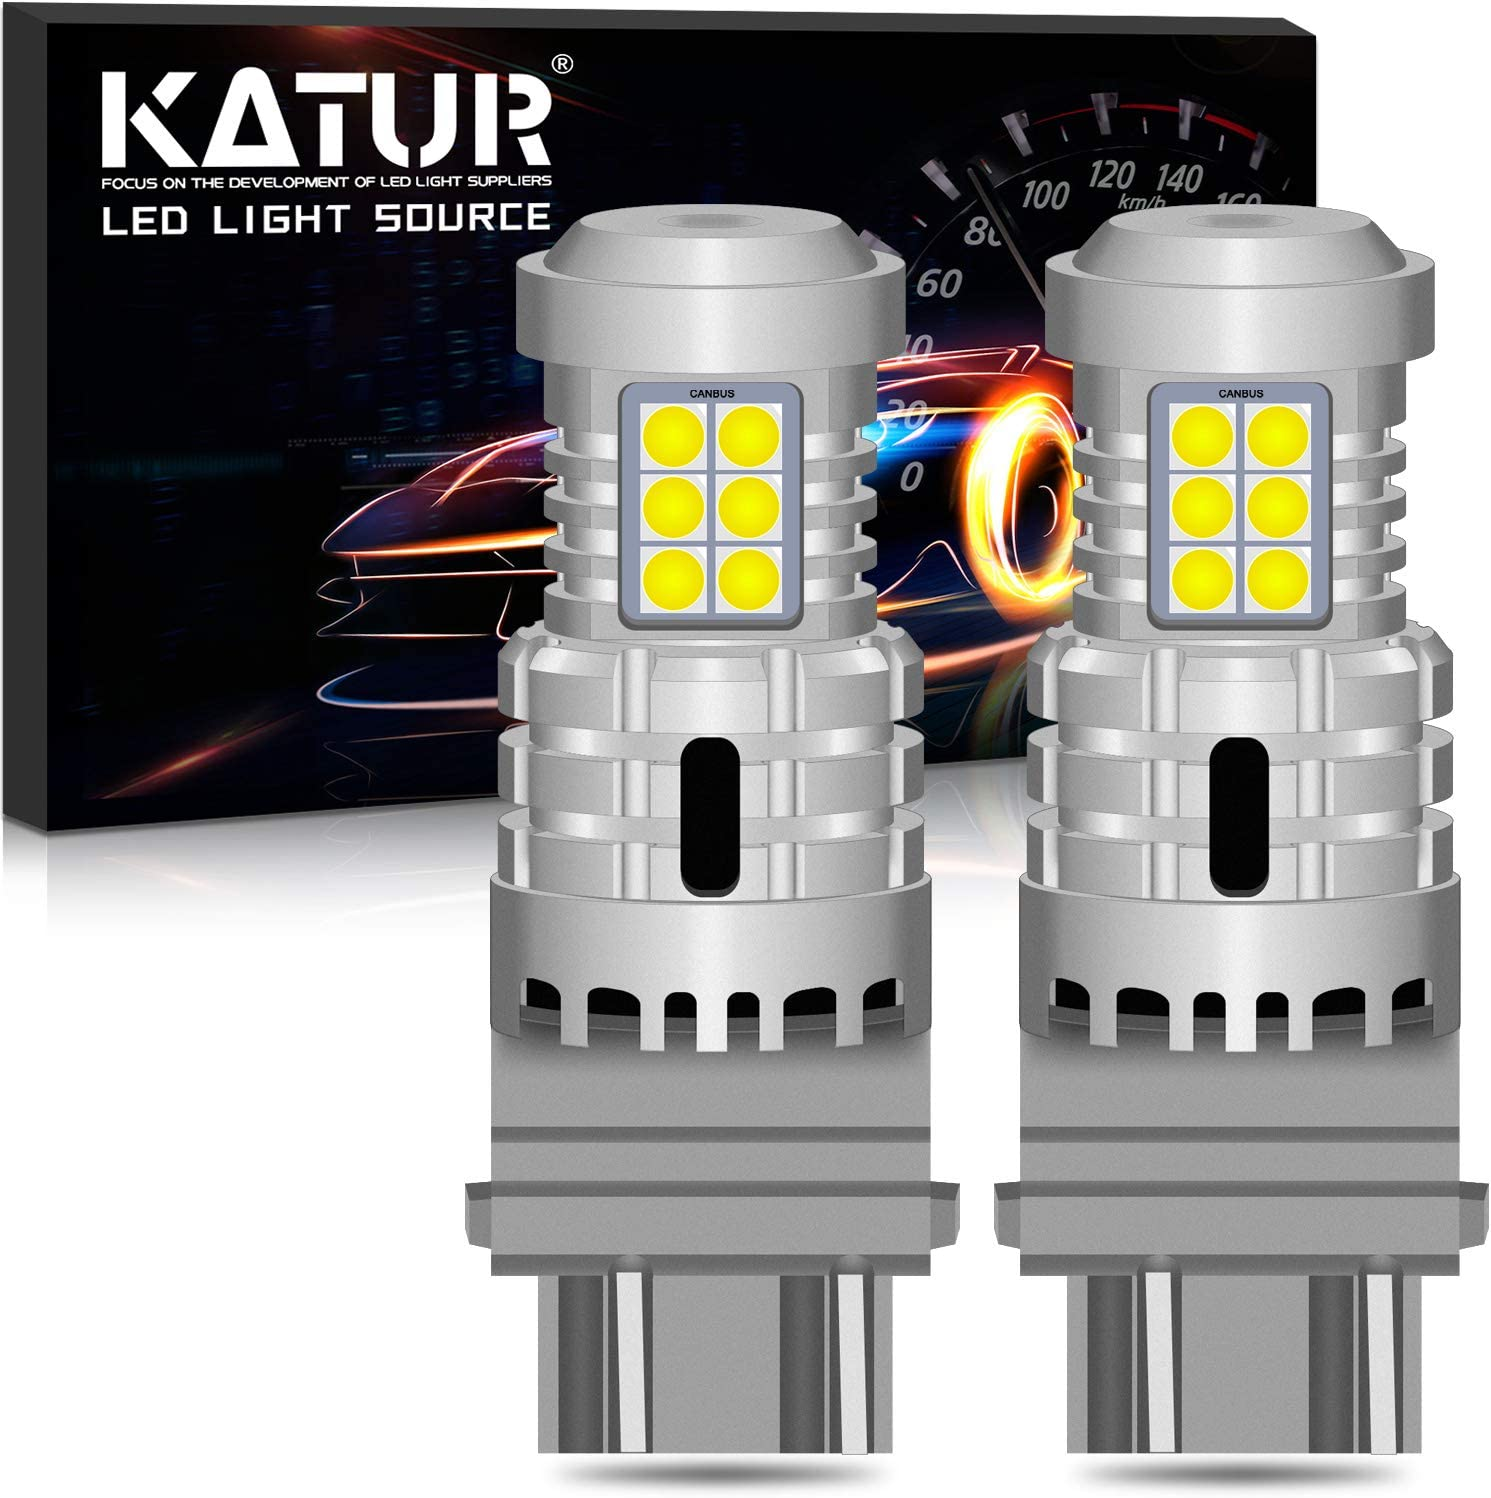 Pack of 2 KATUR 3157 3057 T25 P27//7W LED Bulbs Super Bright 12pcs 3030 /& 8pcs 3020 Chips Canbus Error Free Replace for Turn Signal Reverse Brake Tail Stop Parking RV Lights,Xenon White